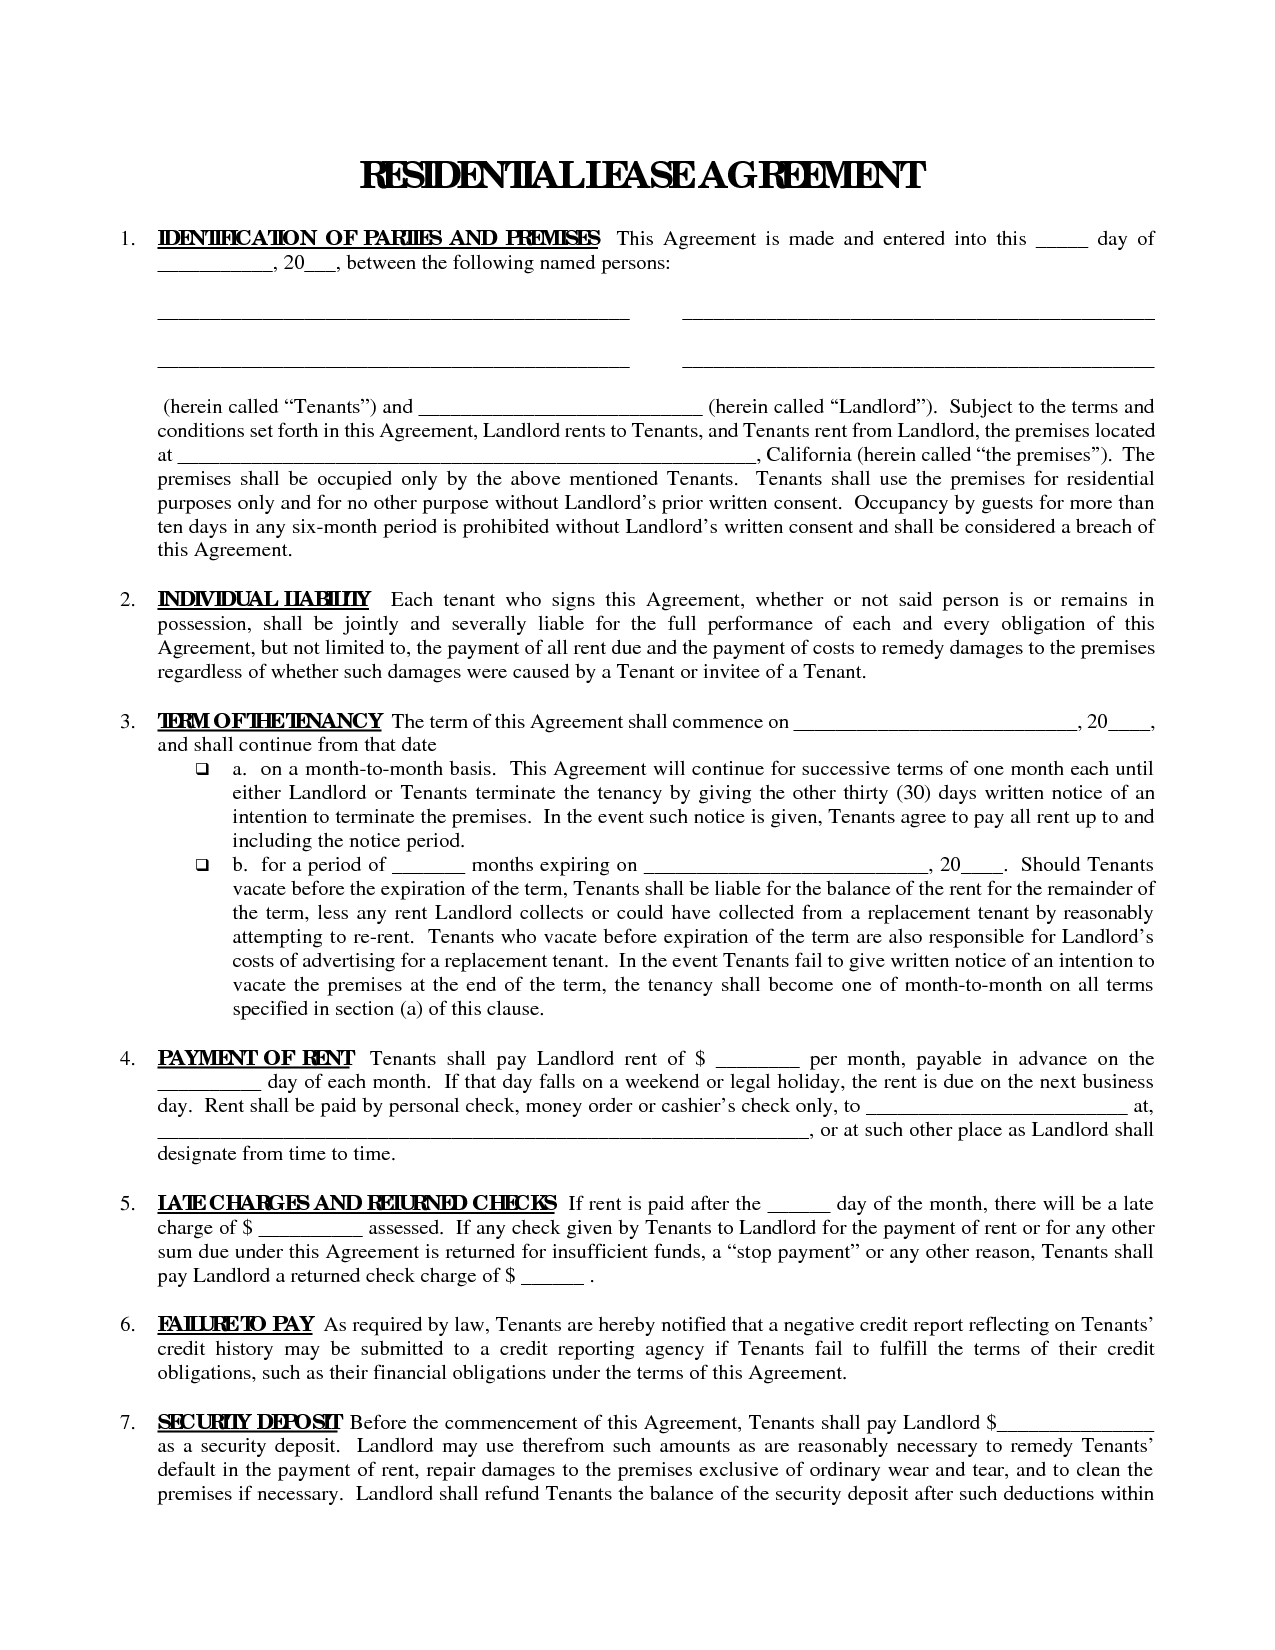 [ Loan Agreement Contract Legal Sample Personal Template Best Lease  Termination Letter Mortgage Michigan Ubad Credit Car ]   Best Free Home  Design Idea U0026 ...  Free Lease Template Word